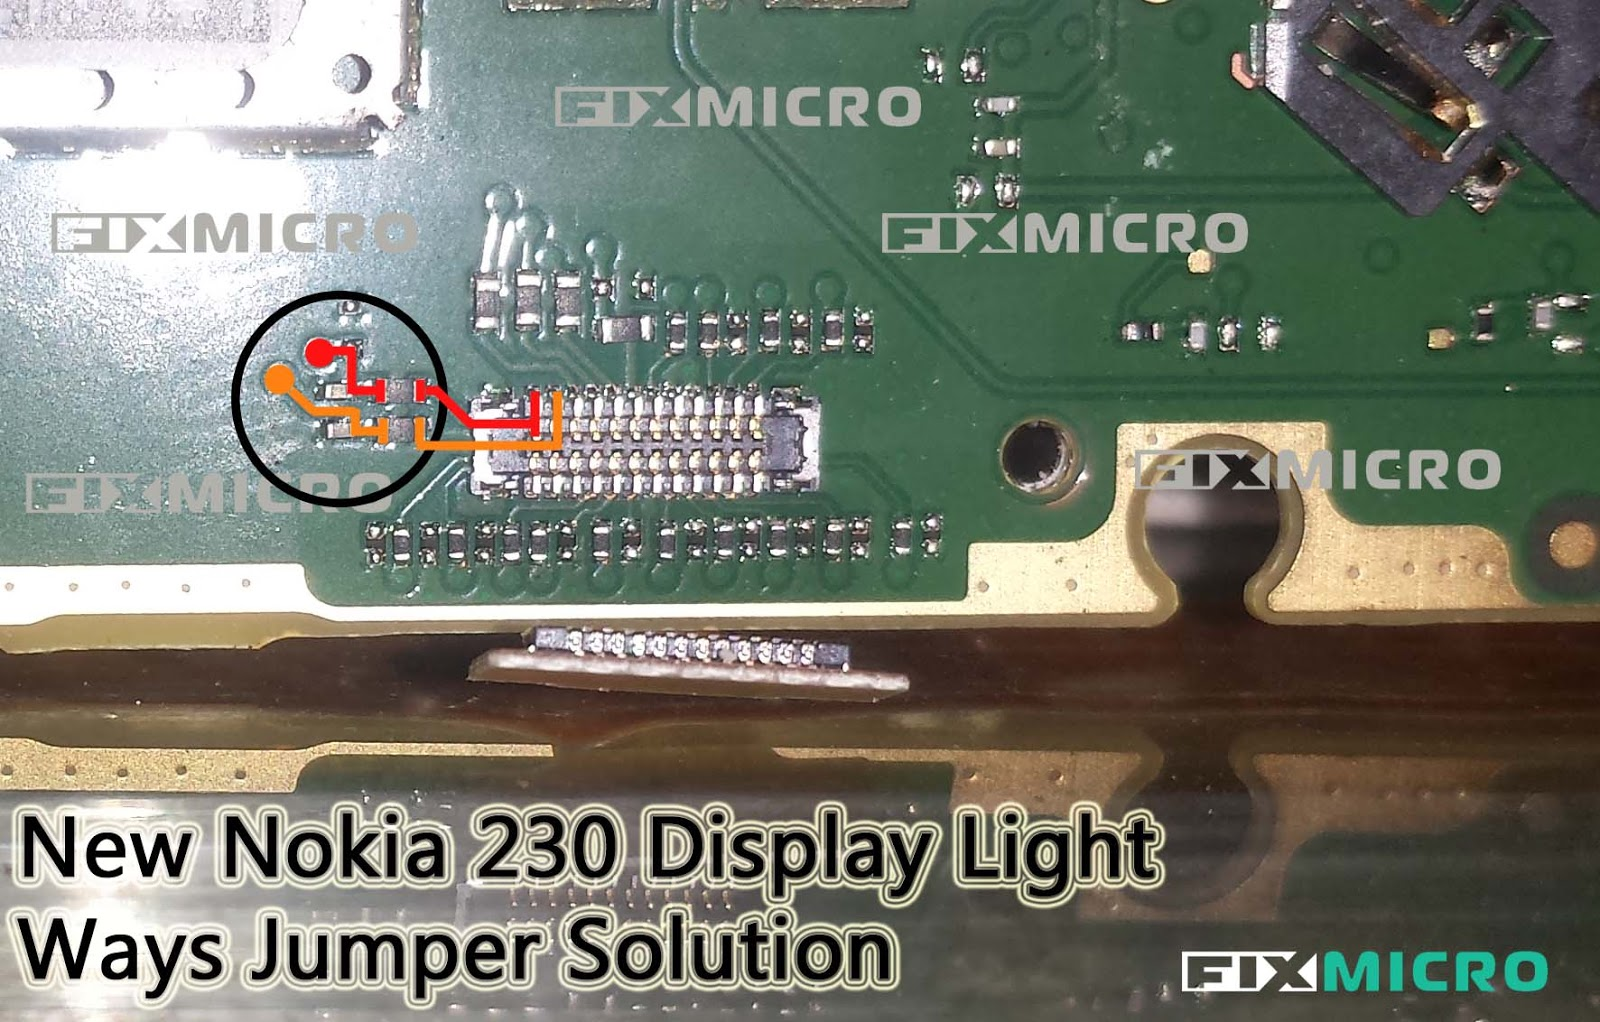 Interfacing Ds1307 Atmega 16 Avr Mcu together with Microsoft Nokia 230 Display Light furthermore Serial LCD by Scott Edwards and Arduino together with 190440692143 further Ir Remote Controlled Home Appliances. on lcd pin diagram